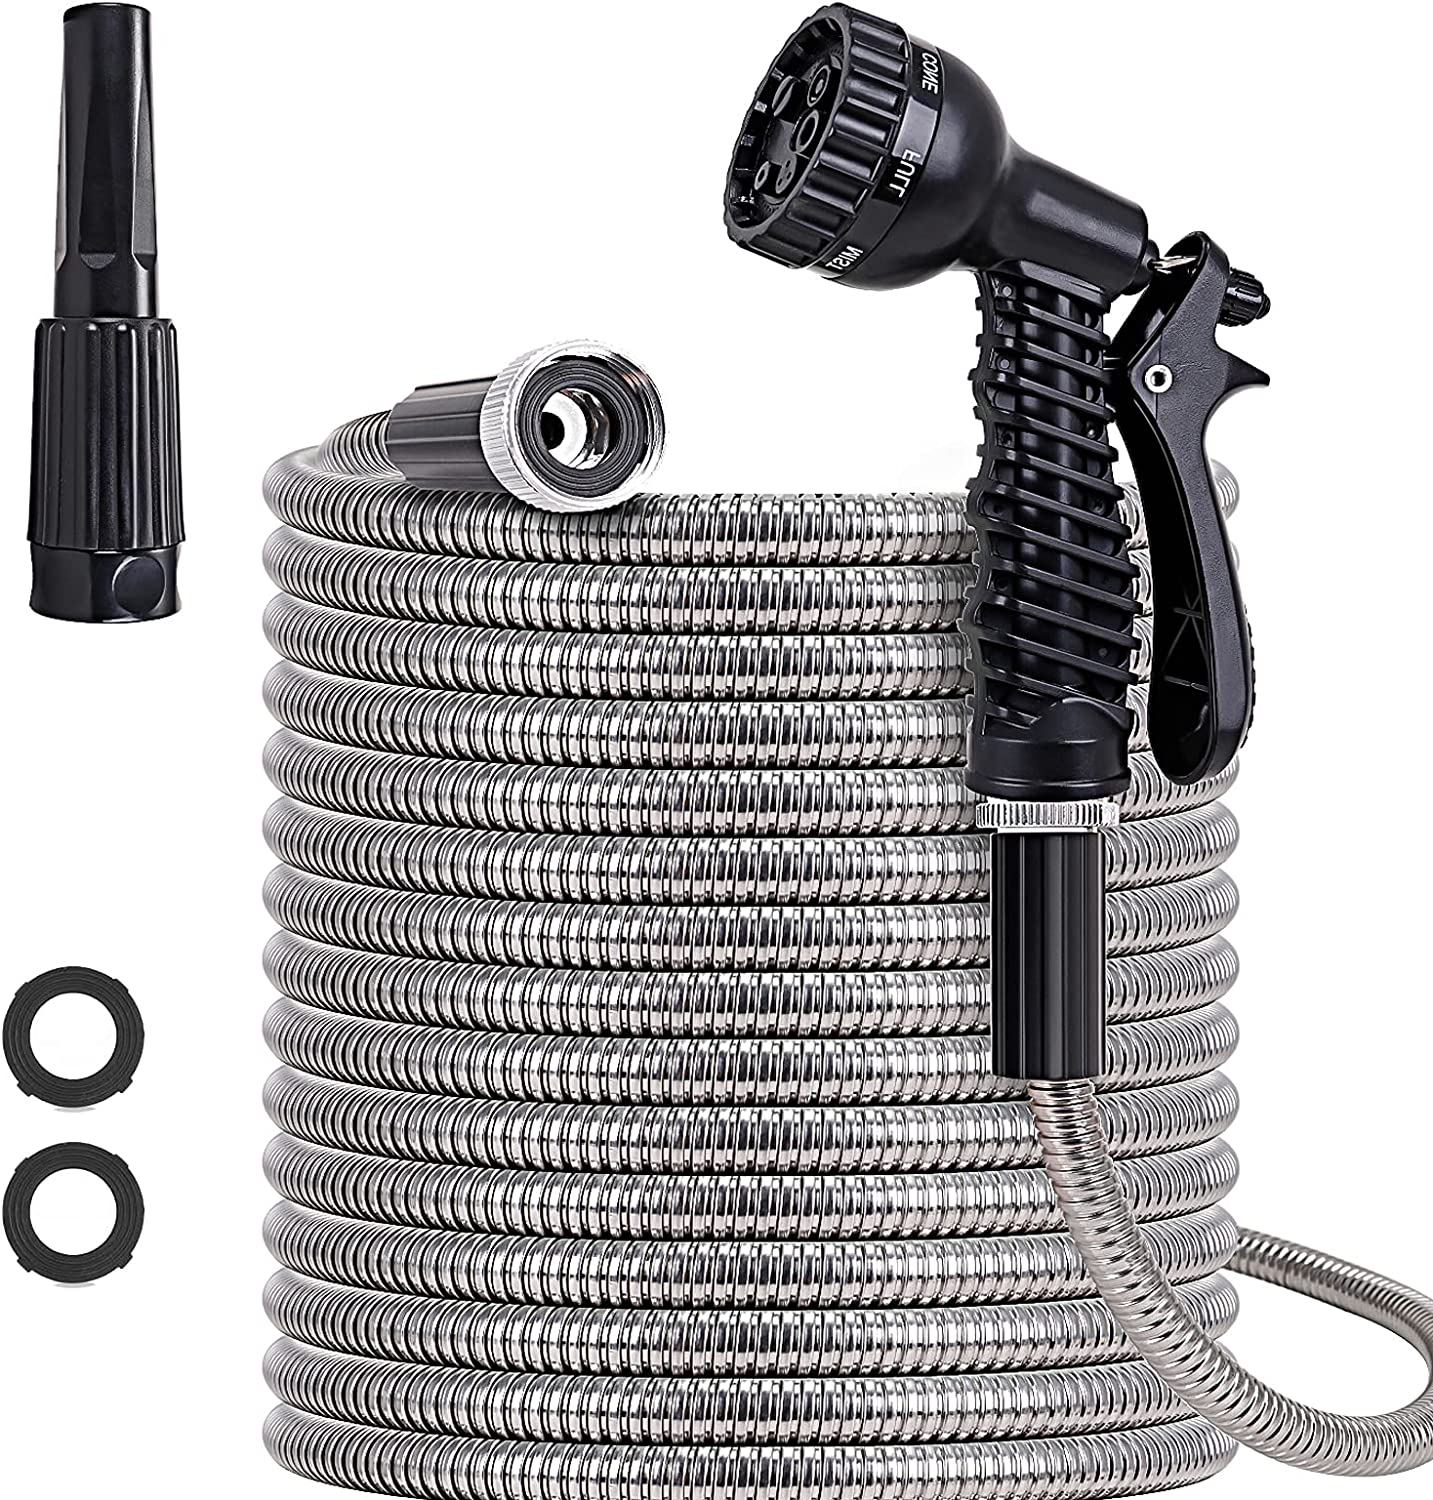 SIXWOOD Metal Garden Hose 100FT, Stainless Water Hose with Adjustable Nozzle and 7 Pattern Sprayer, Heavy Duty Hoses for Yard, Outdoor - Flexible, Never Kink & Tangle, Puncture Resistant